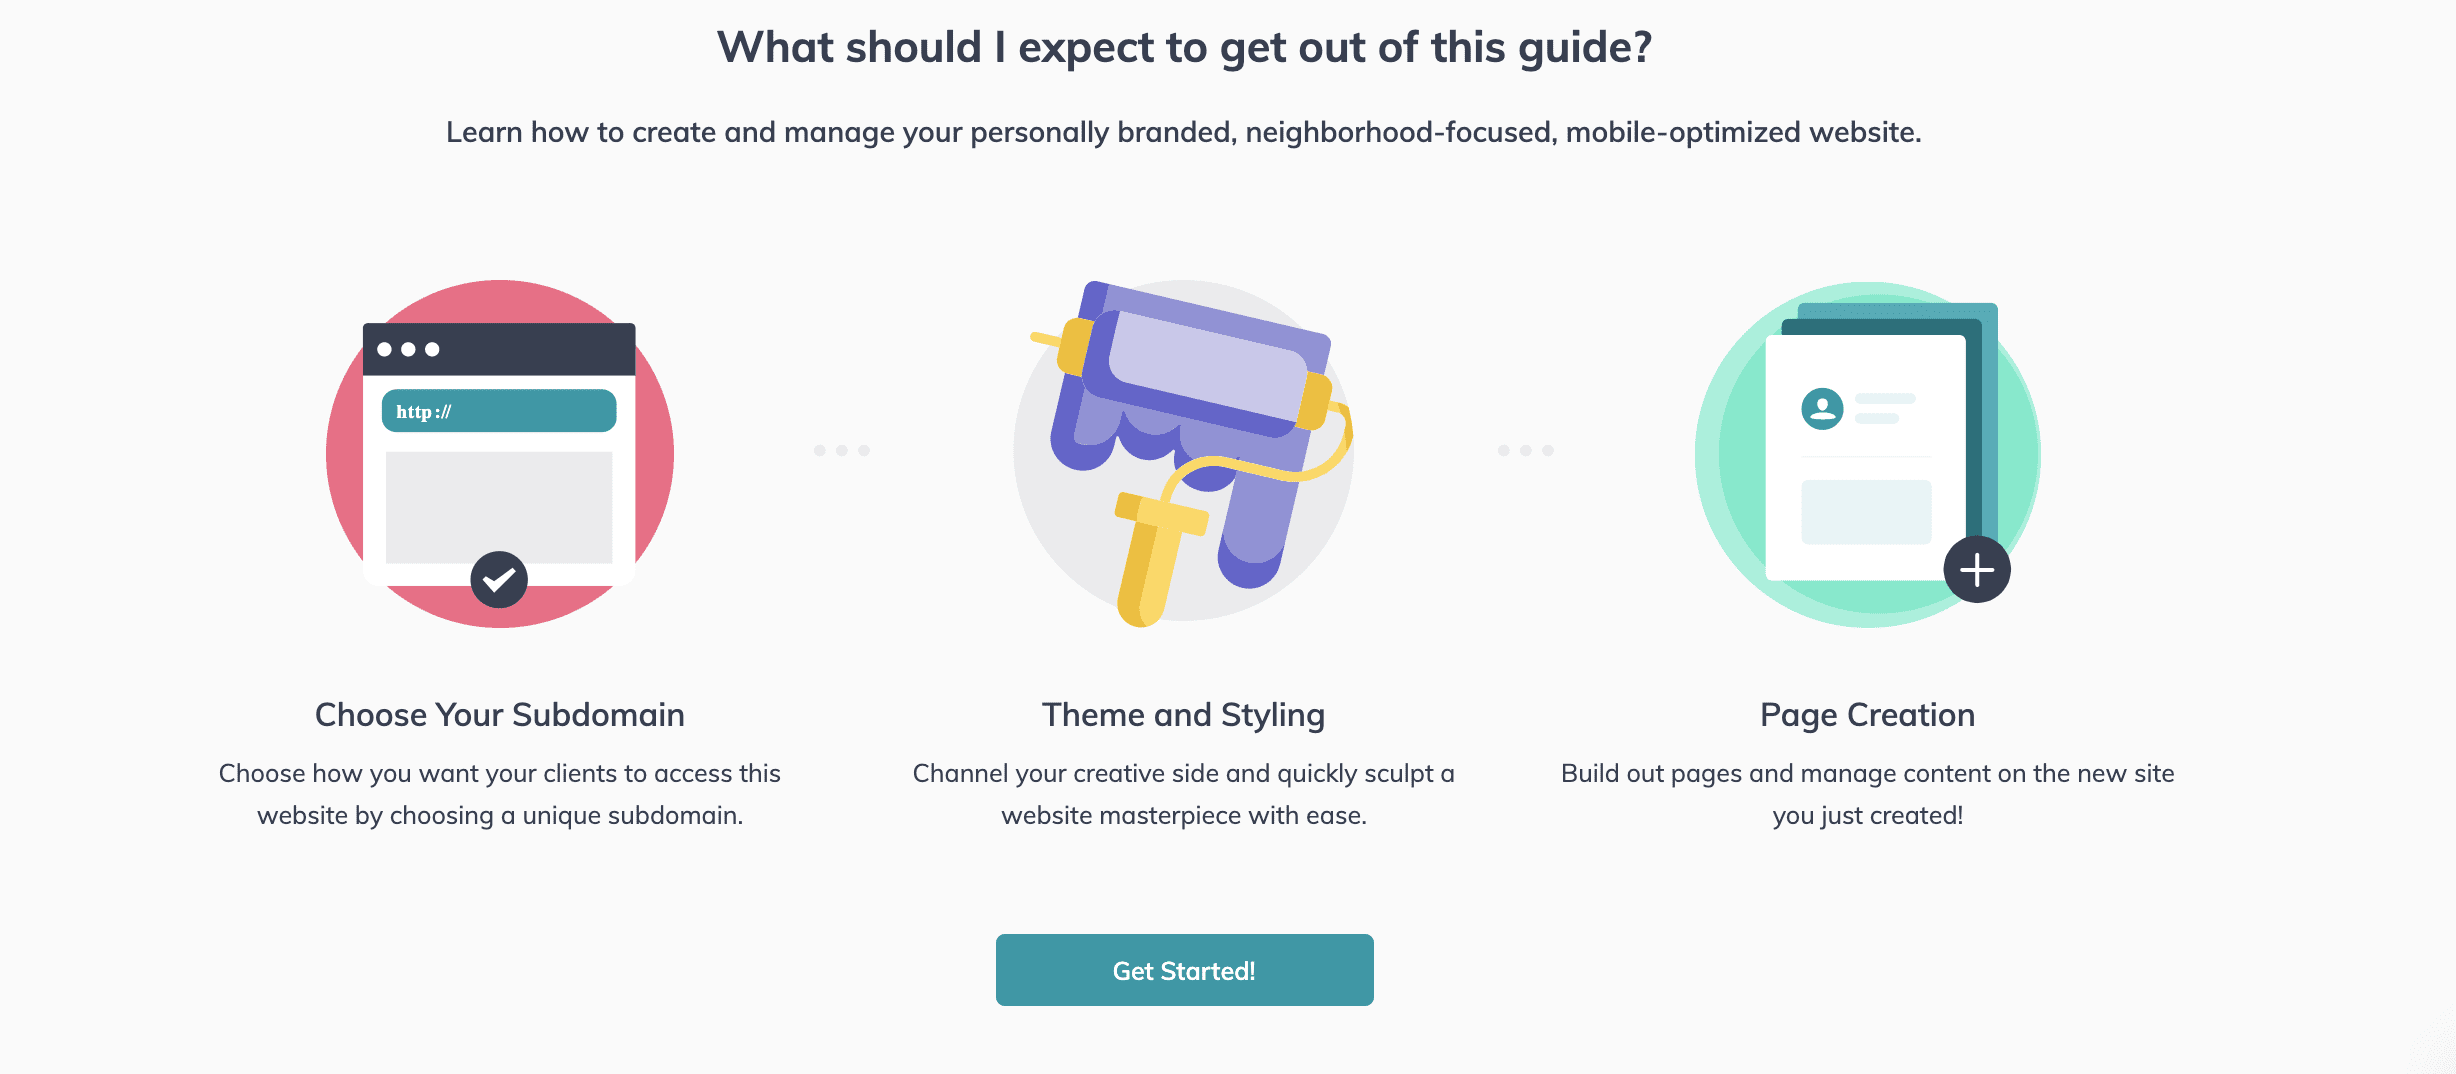 Using the Kelle Guide, we will follow the walkthrough to set up the foundation of the agent site. This will include choosing a subdomain, theme and styling, and page creation.